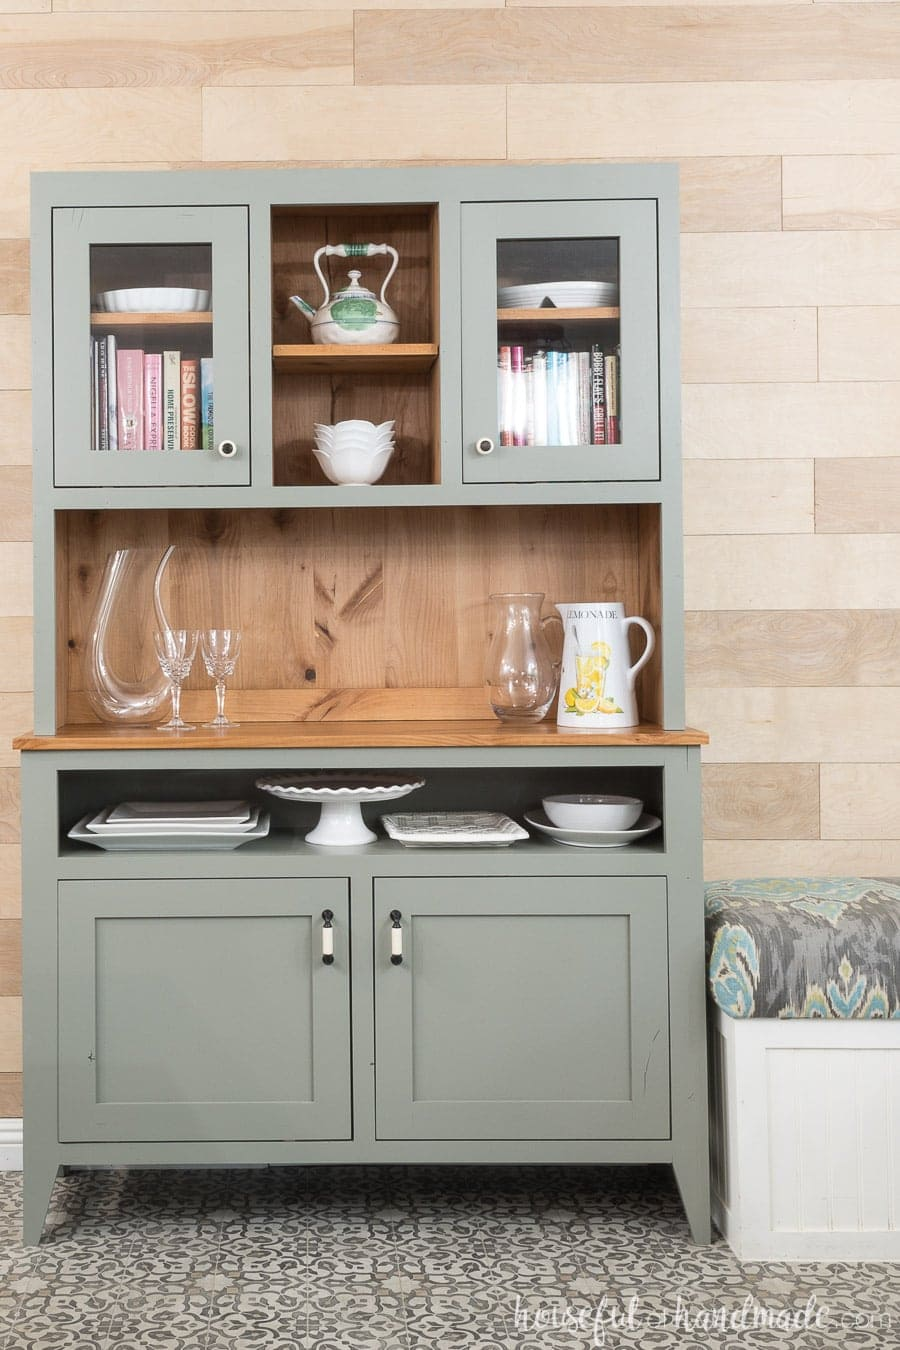 Gorgeous gray dining room hutch with natural knotty wood in the inside. Lots of storage and display space.